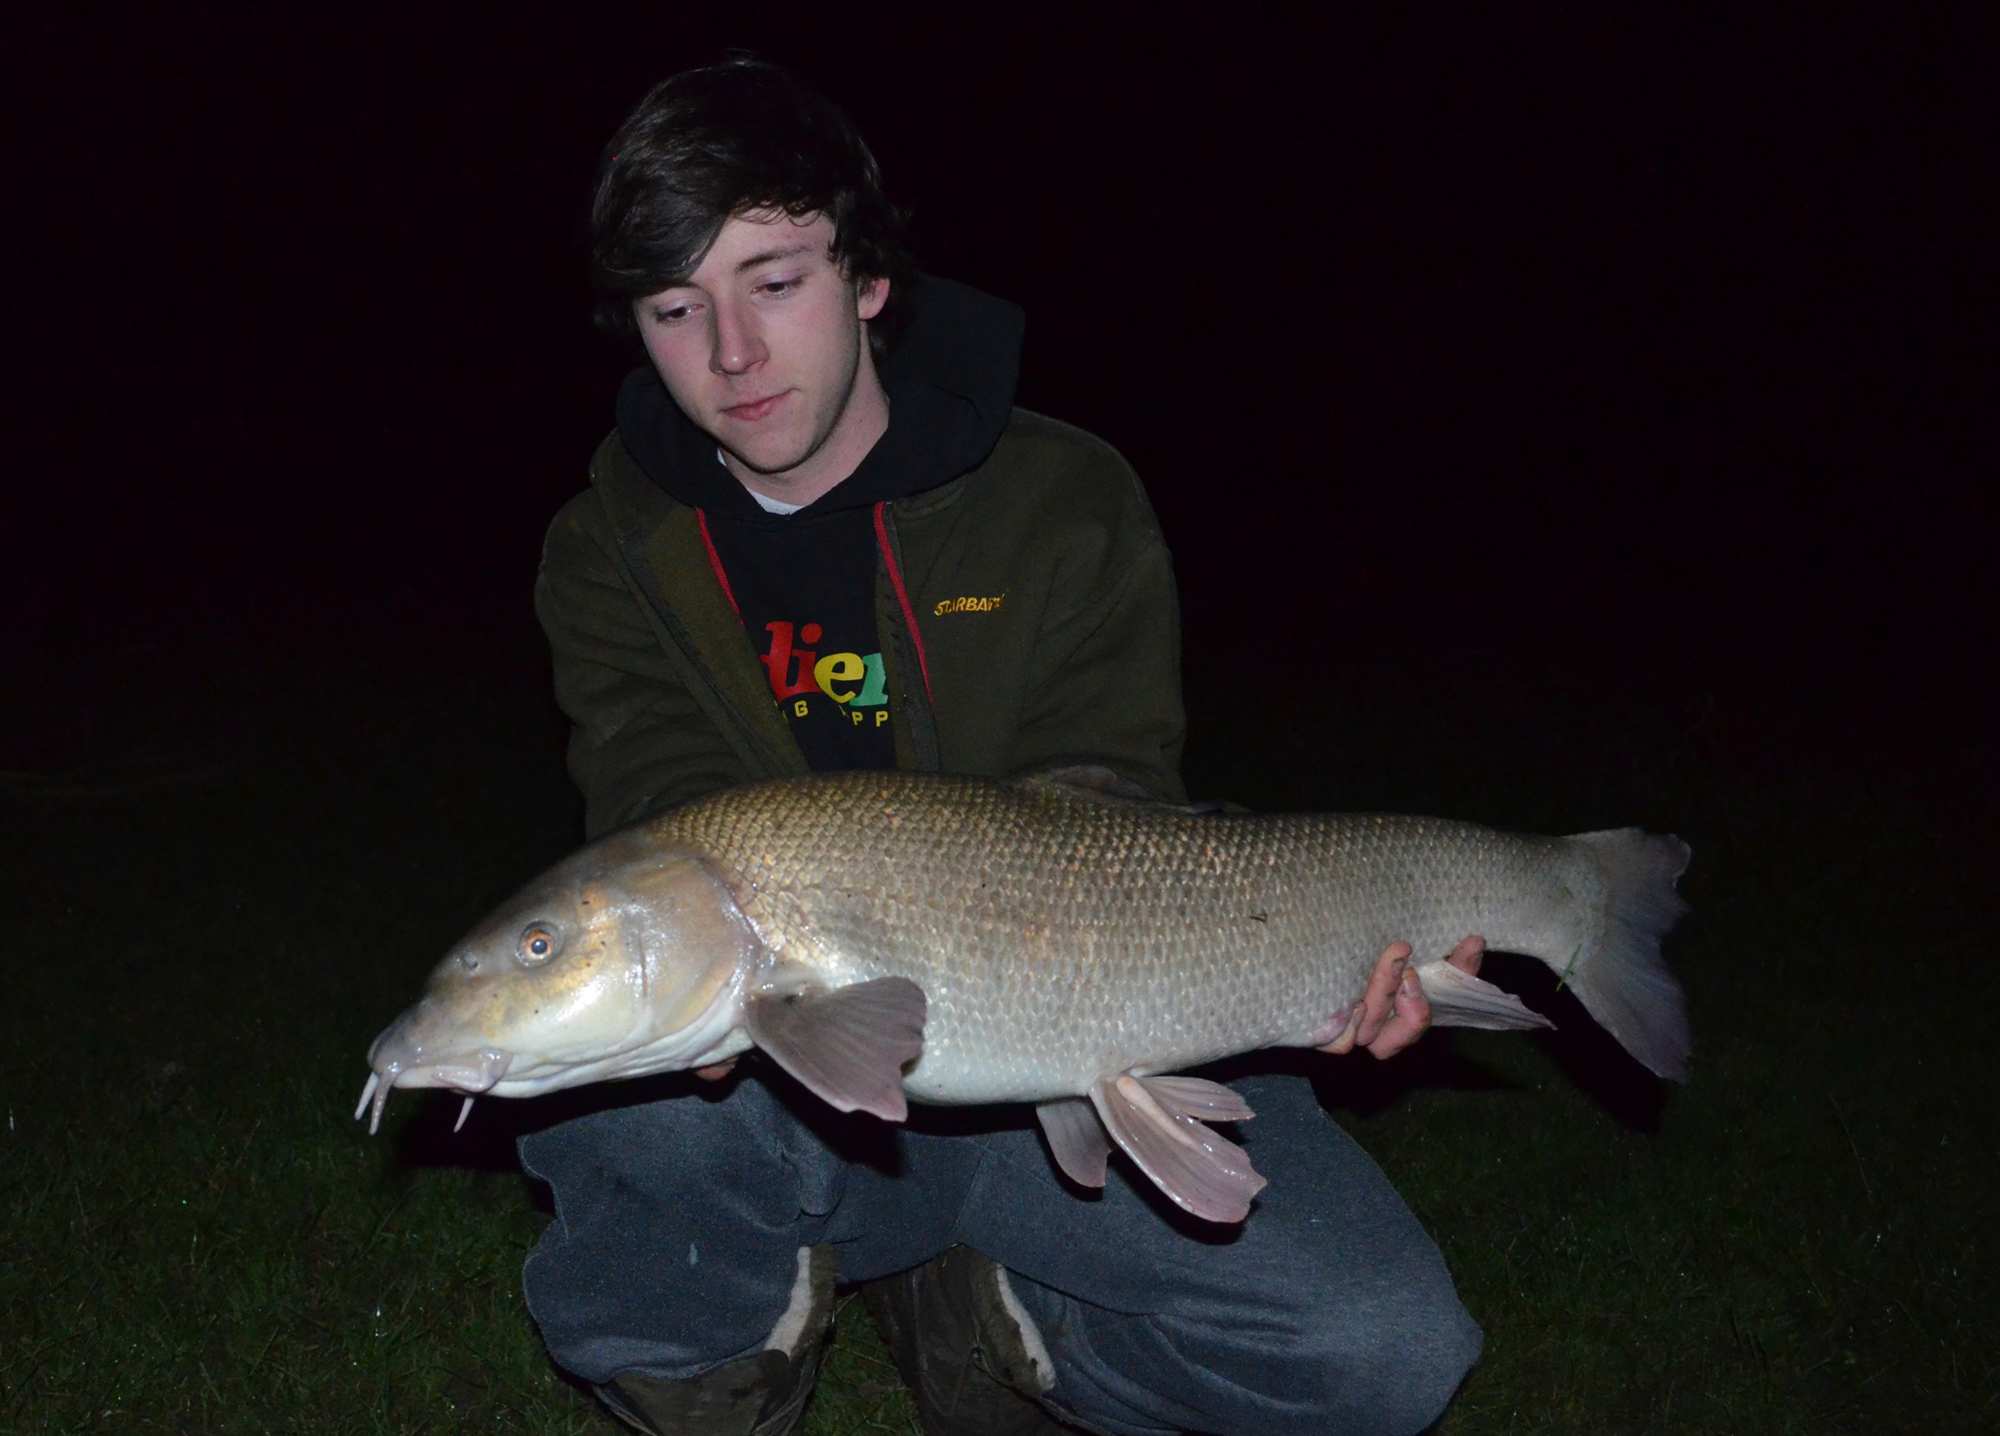 12lb 12oz Barbel - River Ouse